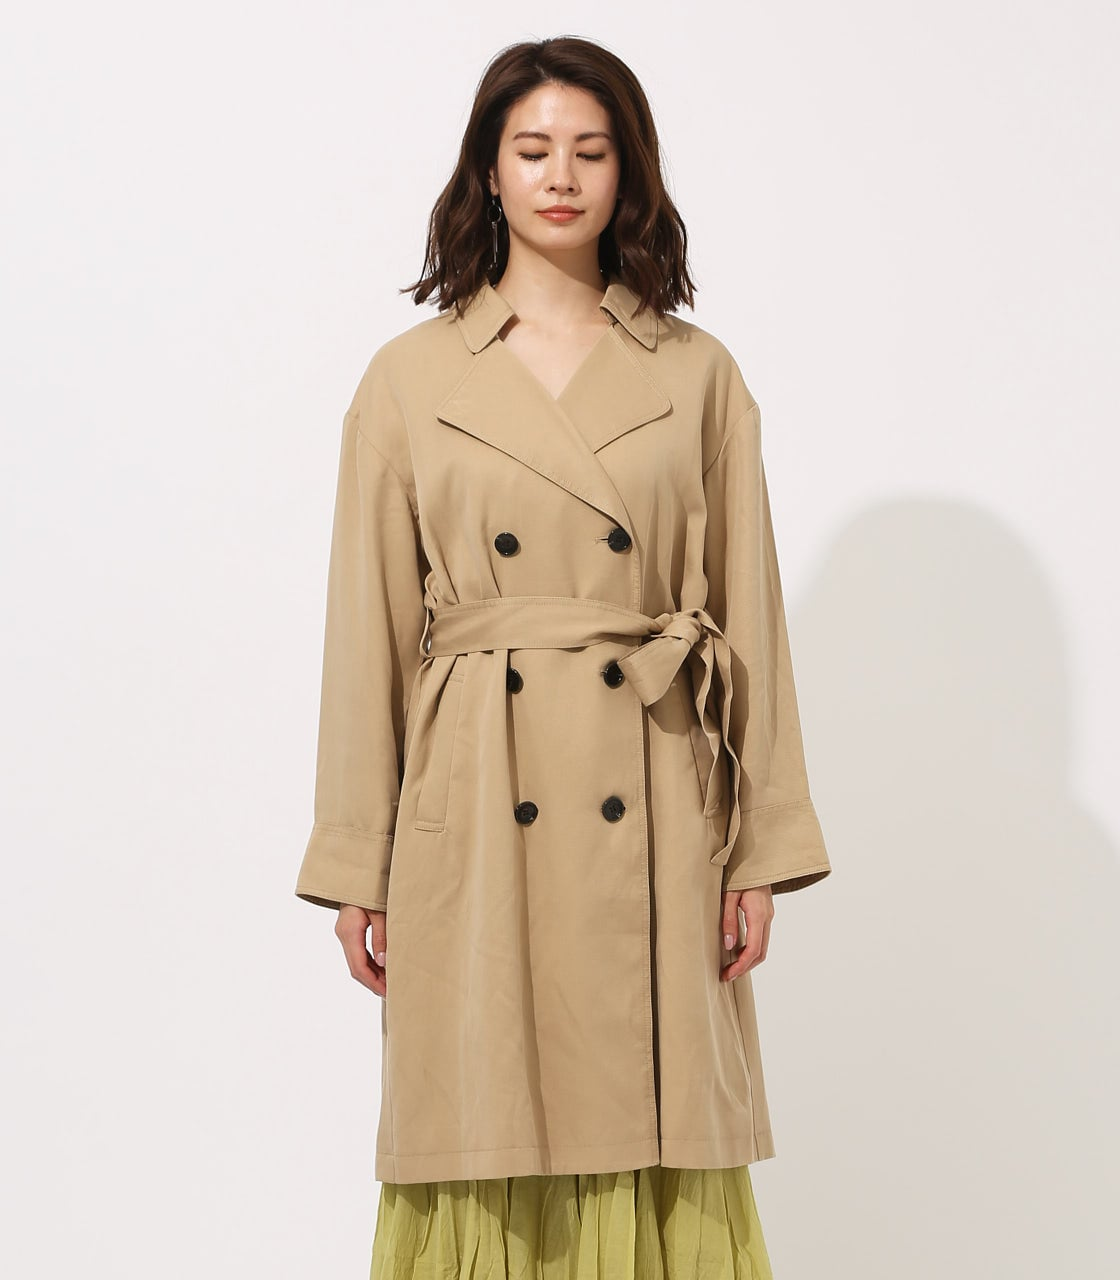 LYOCELL TRENCH COAT 【MOOK49掲載 90015】 詳細画像 BEG 5